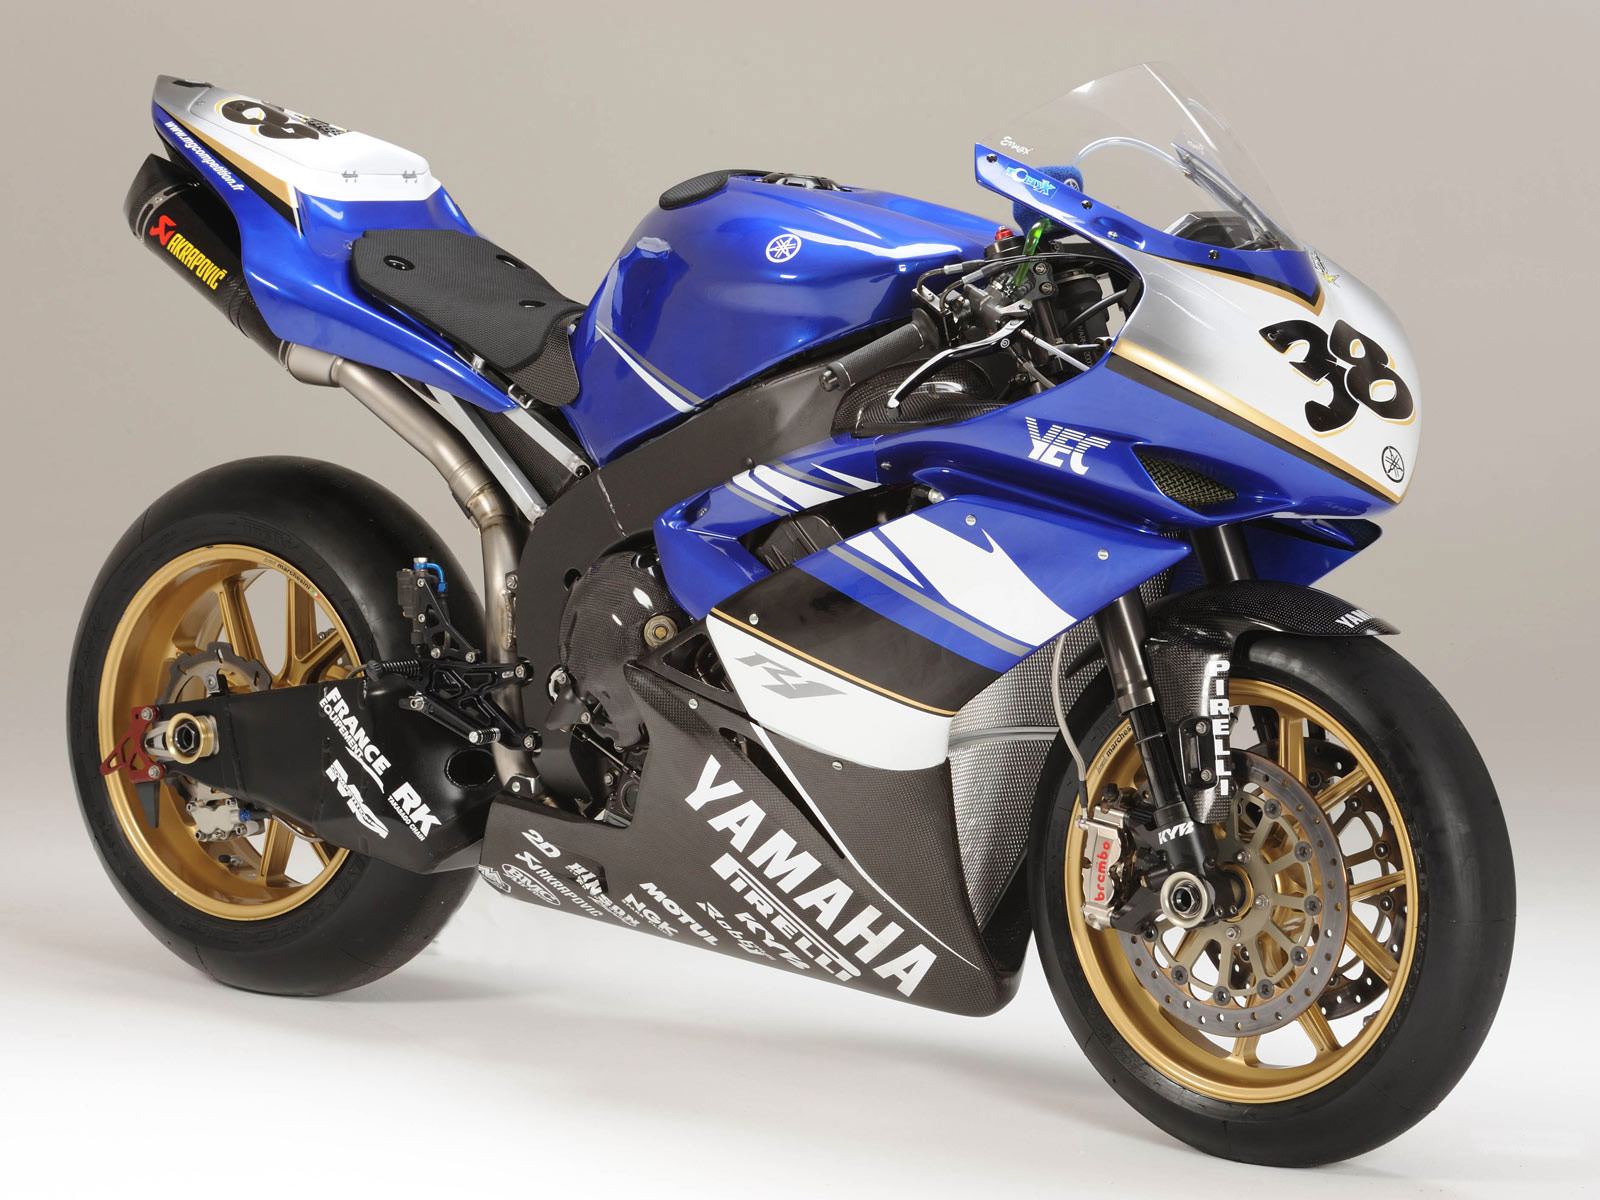 COOL IMAGES Yamaha R1 Wallpapers 1600x1200